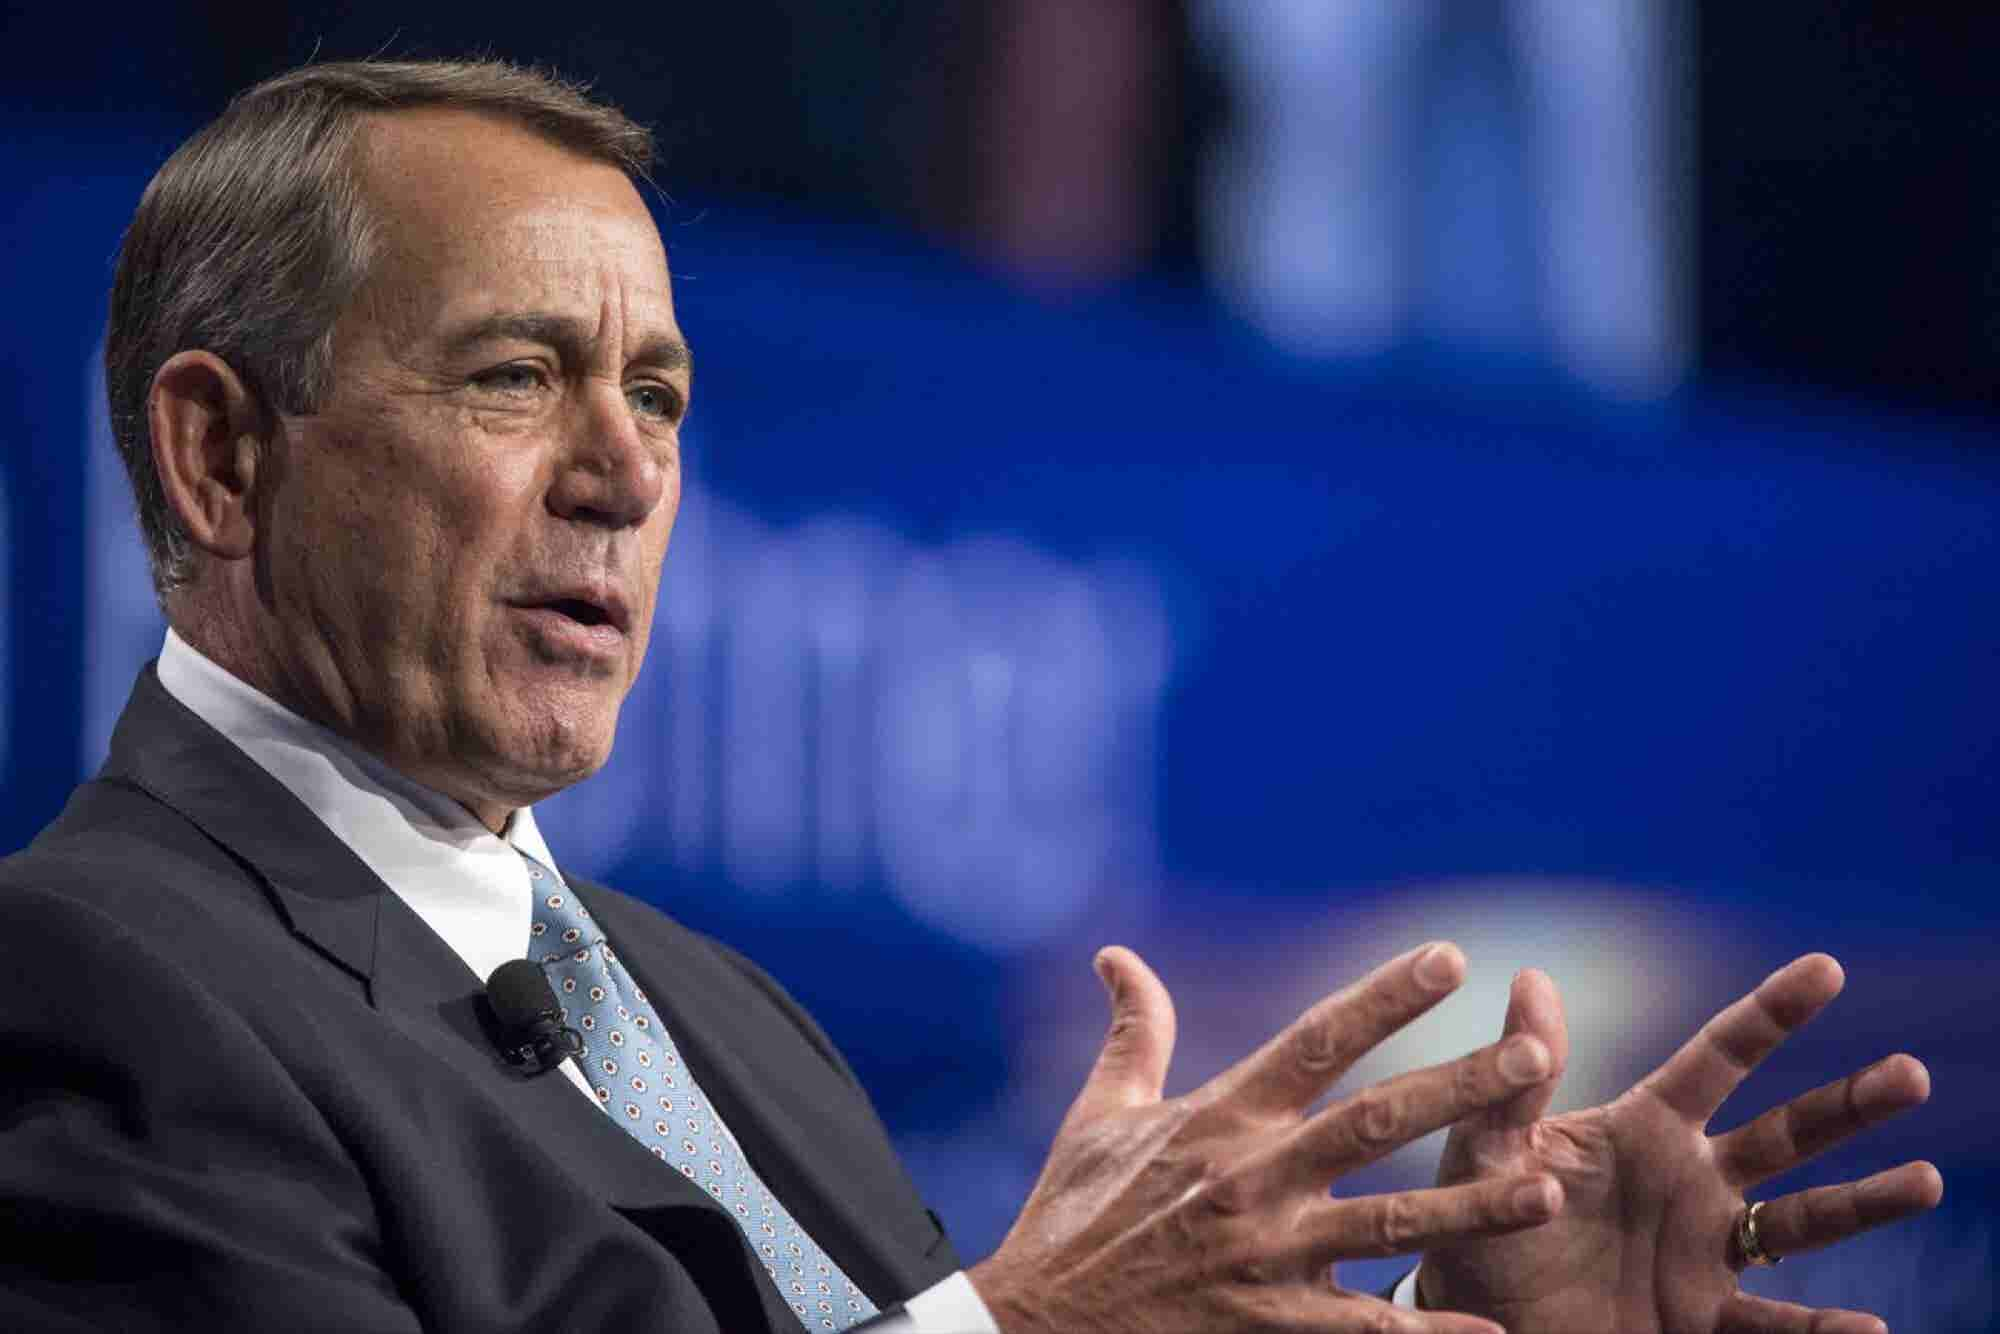 John Boehner Succeeded in Politics Opposing Marijuana but in Retirement Has Joined the Medical Marijuana Industry